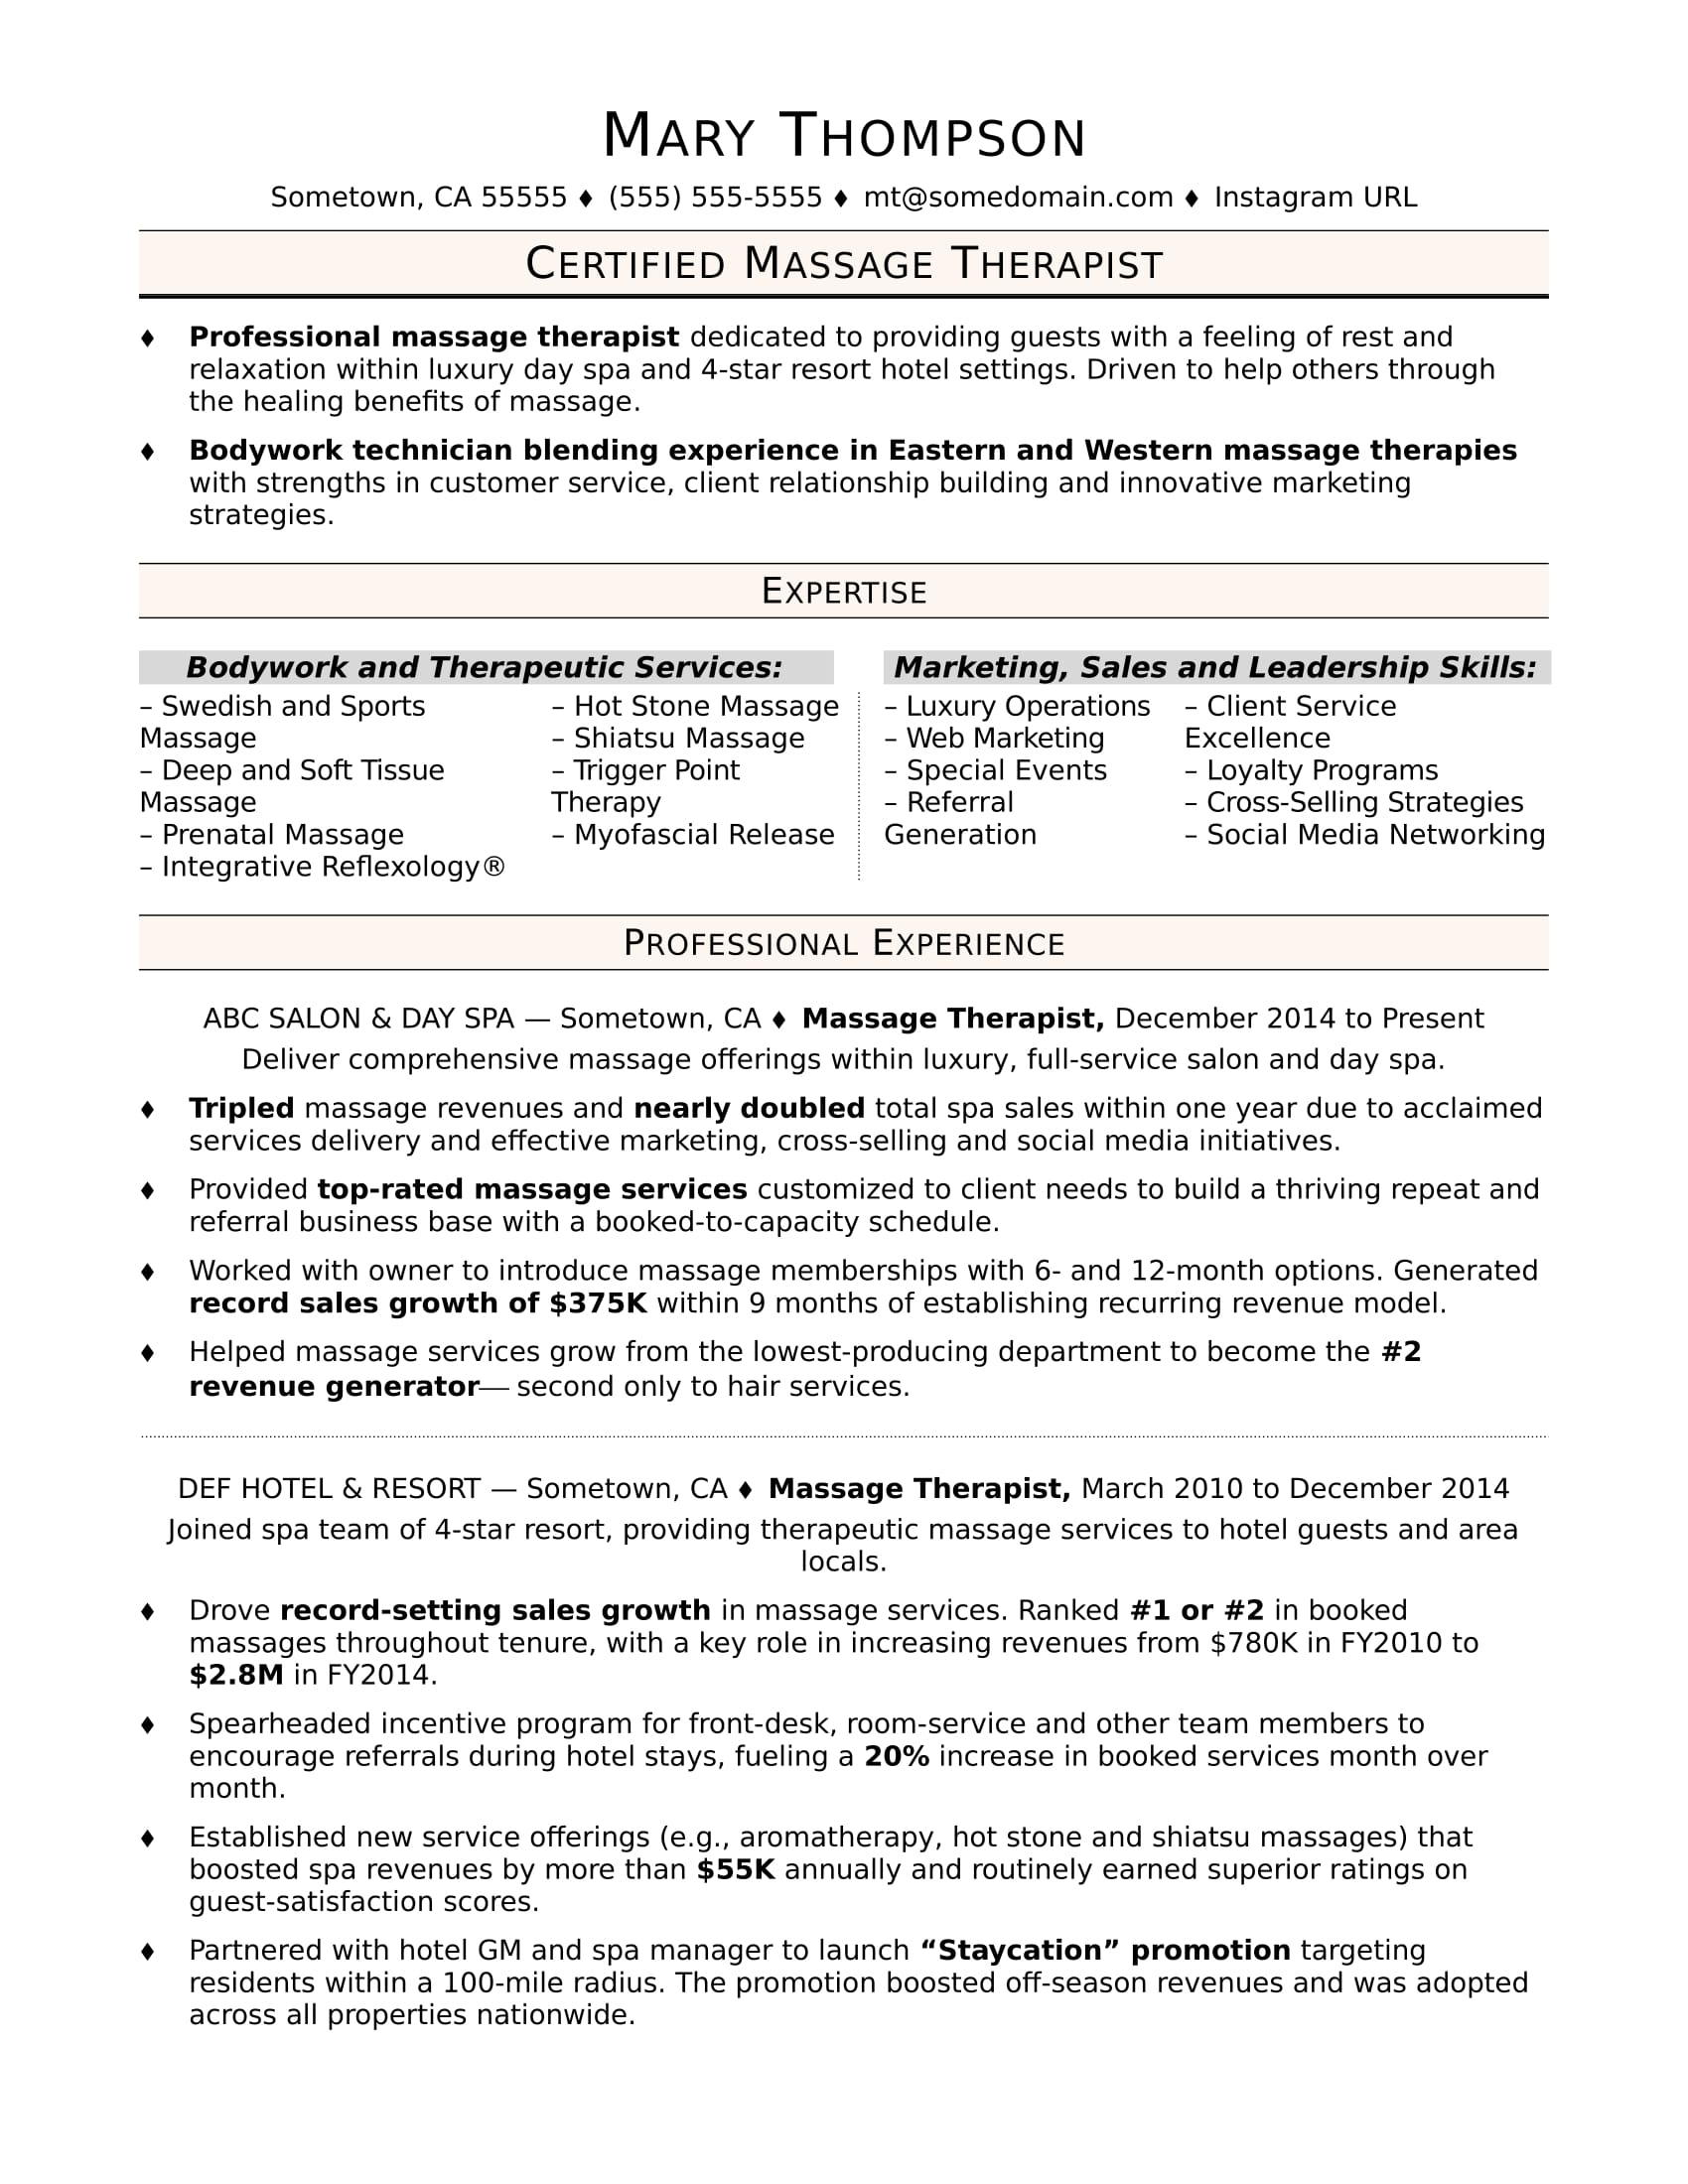 Massage Therapist Resume Sample